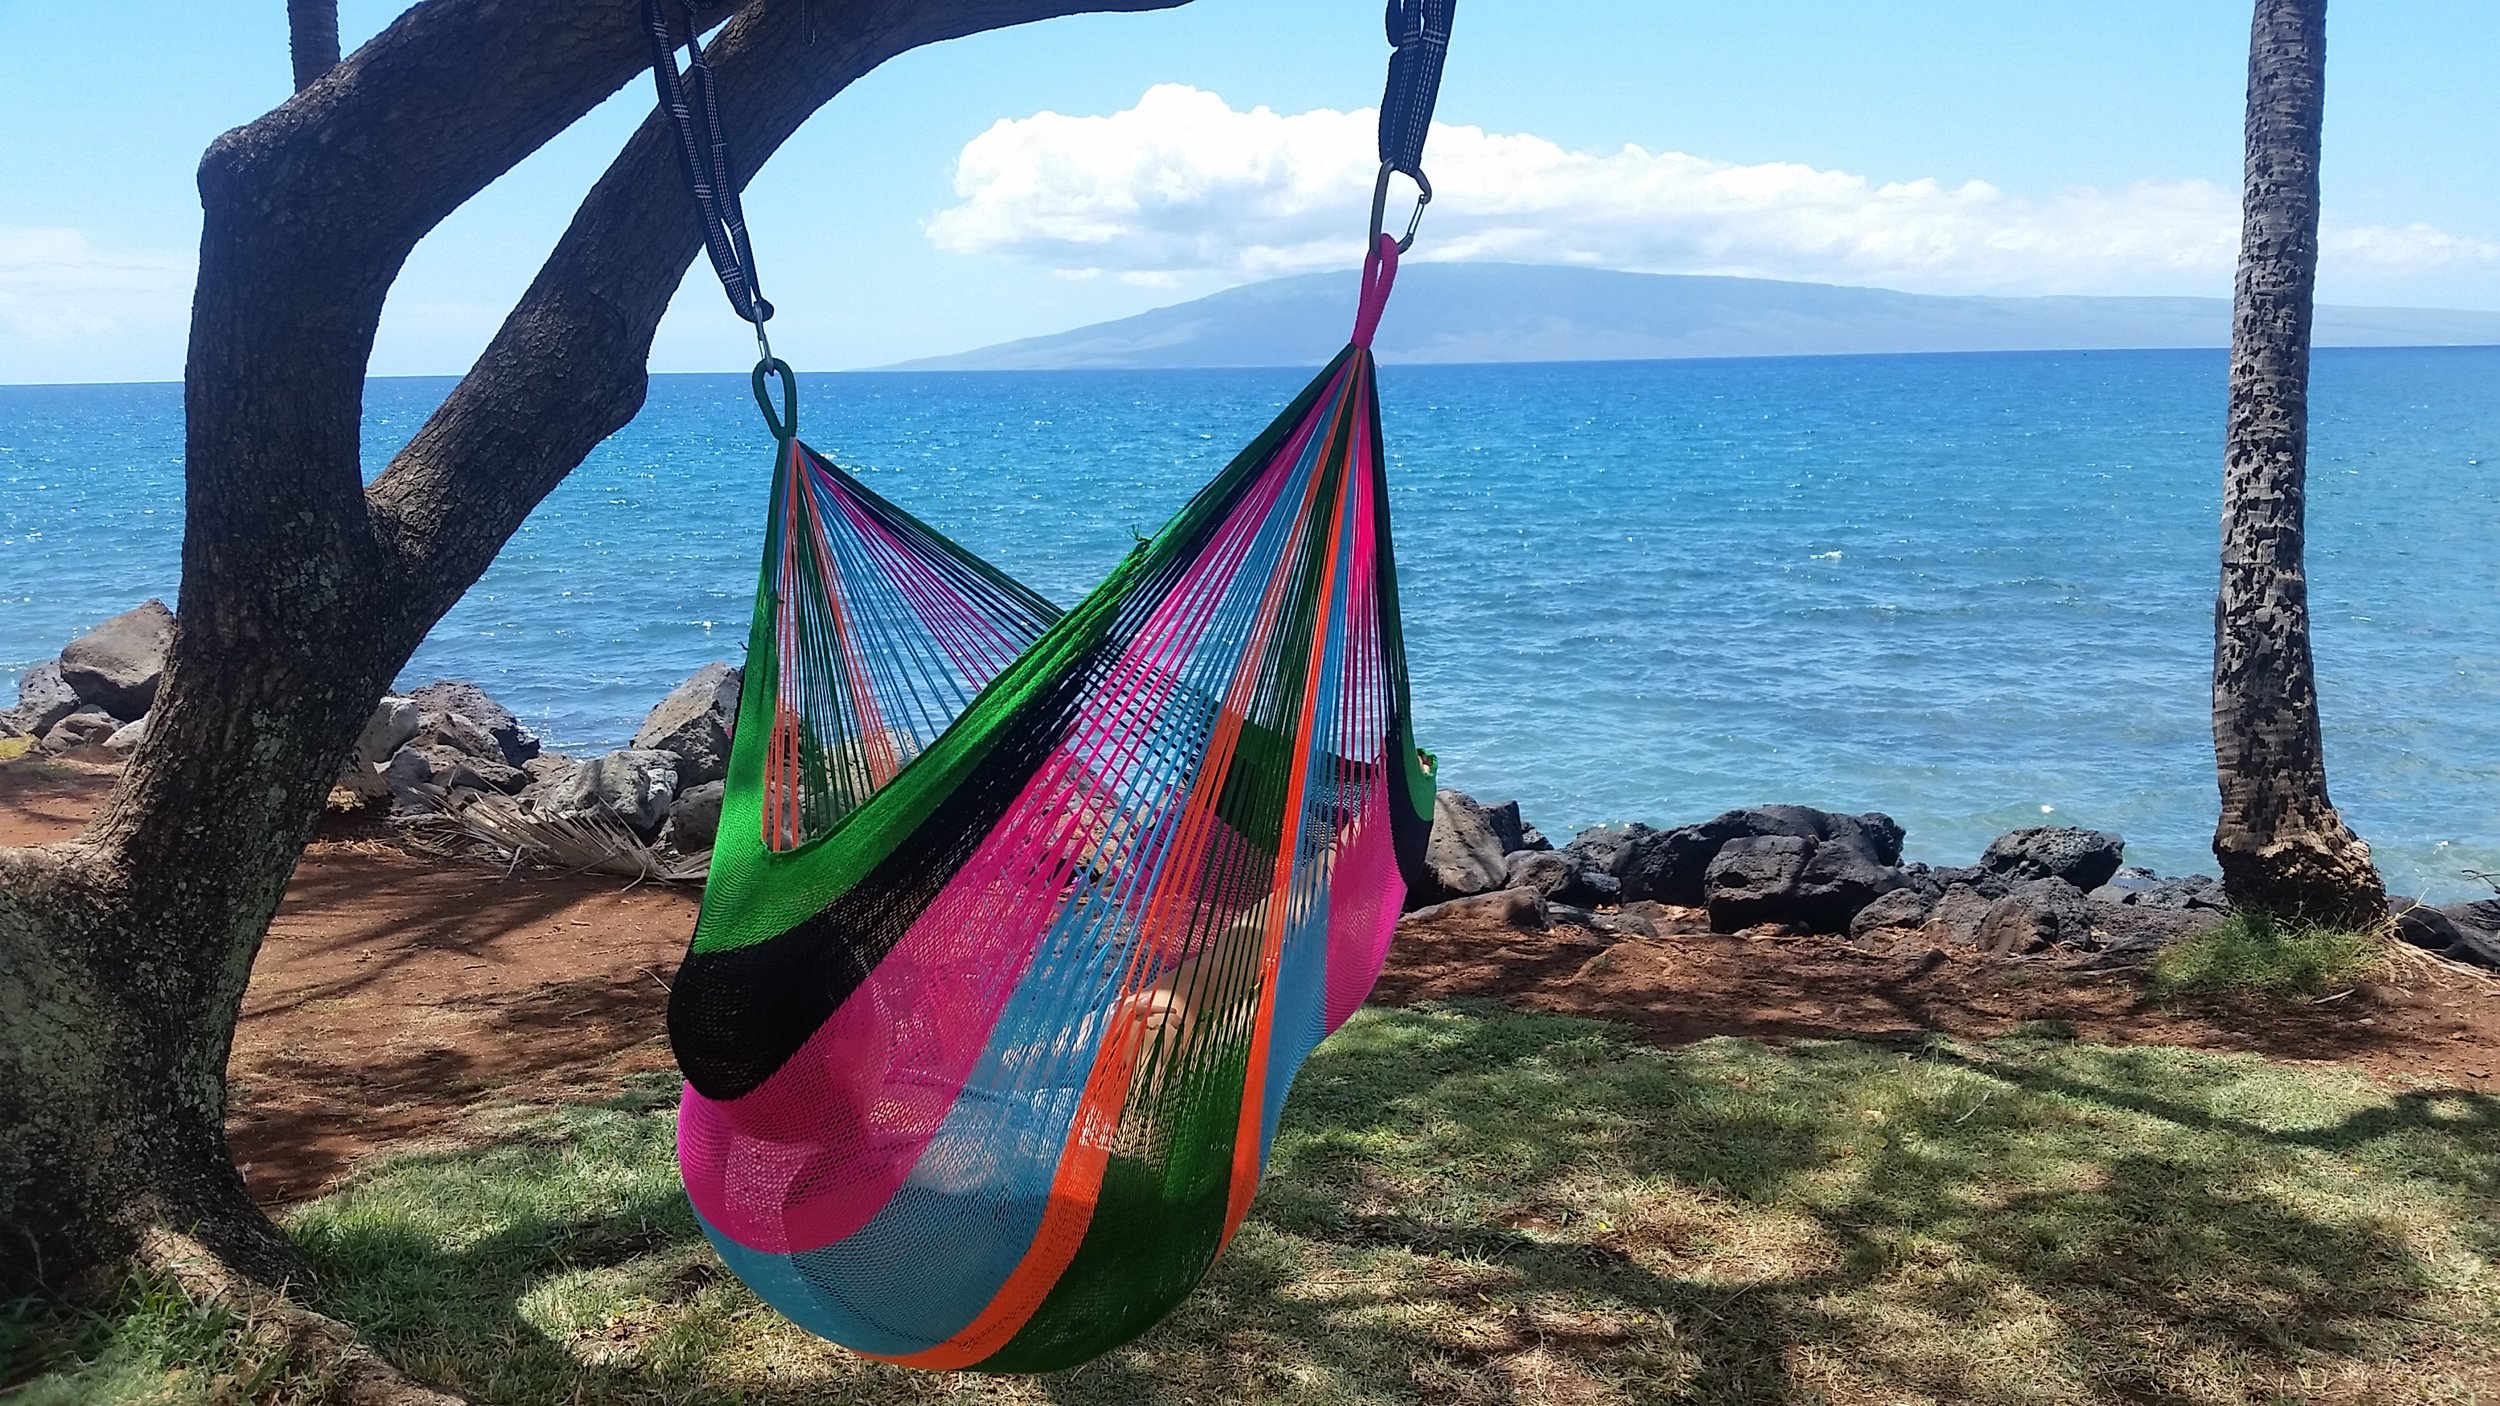 """(Contact us for colors available as they change daily)   Referred to as the """"Sitting Hammock""""in size, this hammock is extra comfy for 1 person with a weight support of 300+ lb.Sit down or extend out into a full laying position. Ultra soft,hand woven triple acrylic hammocks can be left outdoors without worry of them losing color or shape.The Thai Sitting Hammock weaving process takes up to 2 weeks to create. This weatherproof hammock is ideal for any outdoor area, great for the beach or lounging by the pool. Luxuriously soft and comfortable. Come rain or shine, you can leave it outdoors and the colors stay bright for many years. The Thai Sitting hammock is available in many unique designs and colors not seen in any other hammocks in the world. We label them after our favorite beach spots on Maui, a perfect place to enjoy them."""